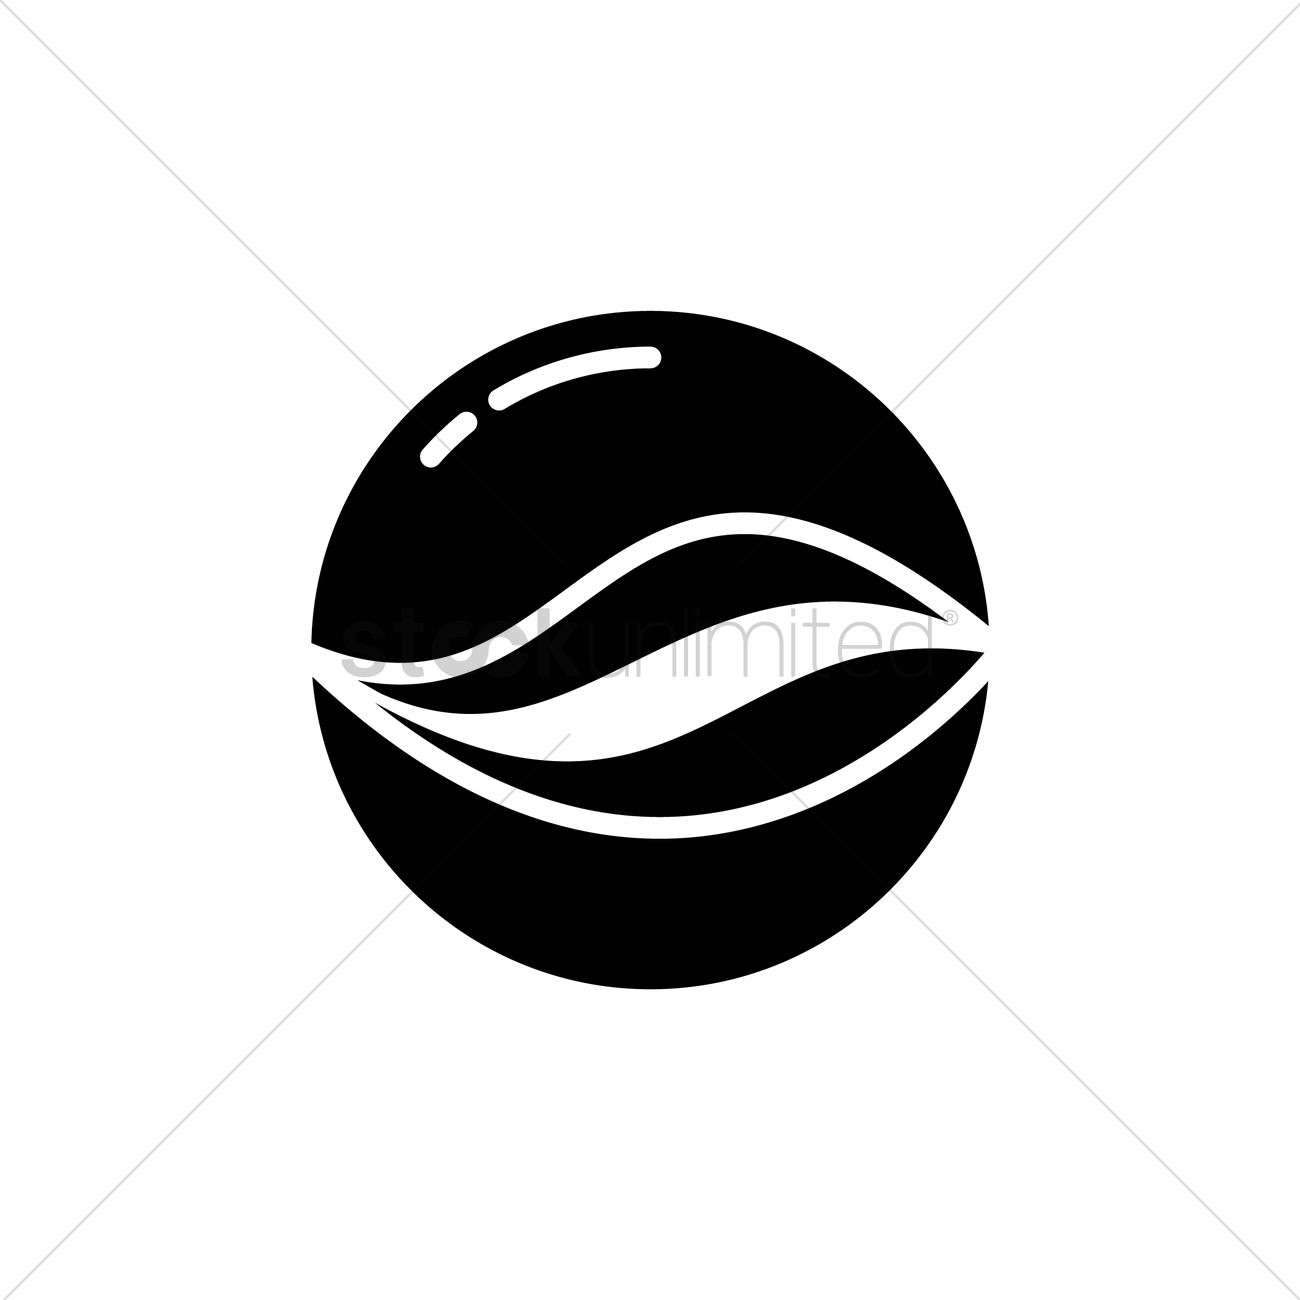 Marble clipart black and white graphic library stock Marble clipart black and white 6 » Clipart Station graphic library stock